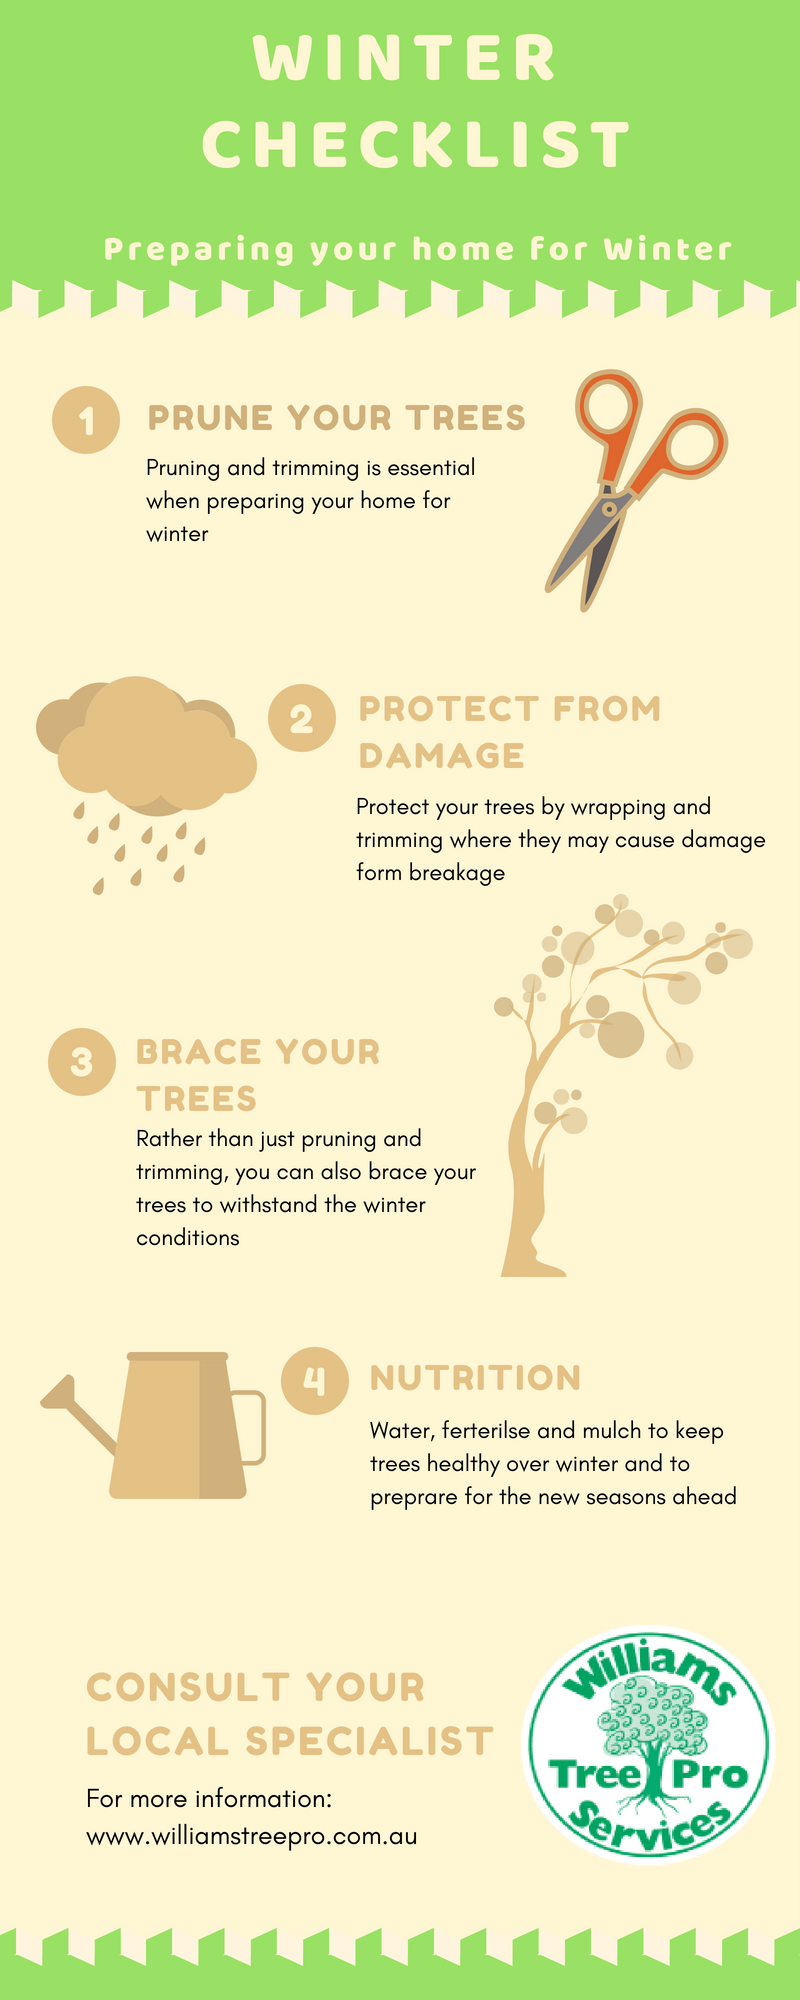 Winter Checklist Inforgraphic - Important - Prepare Home for Winter